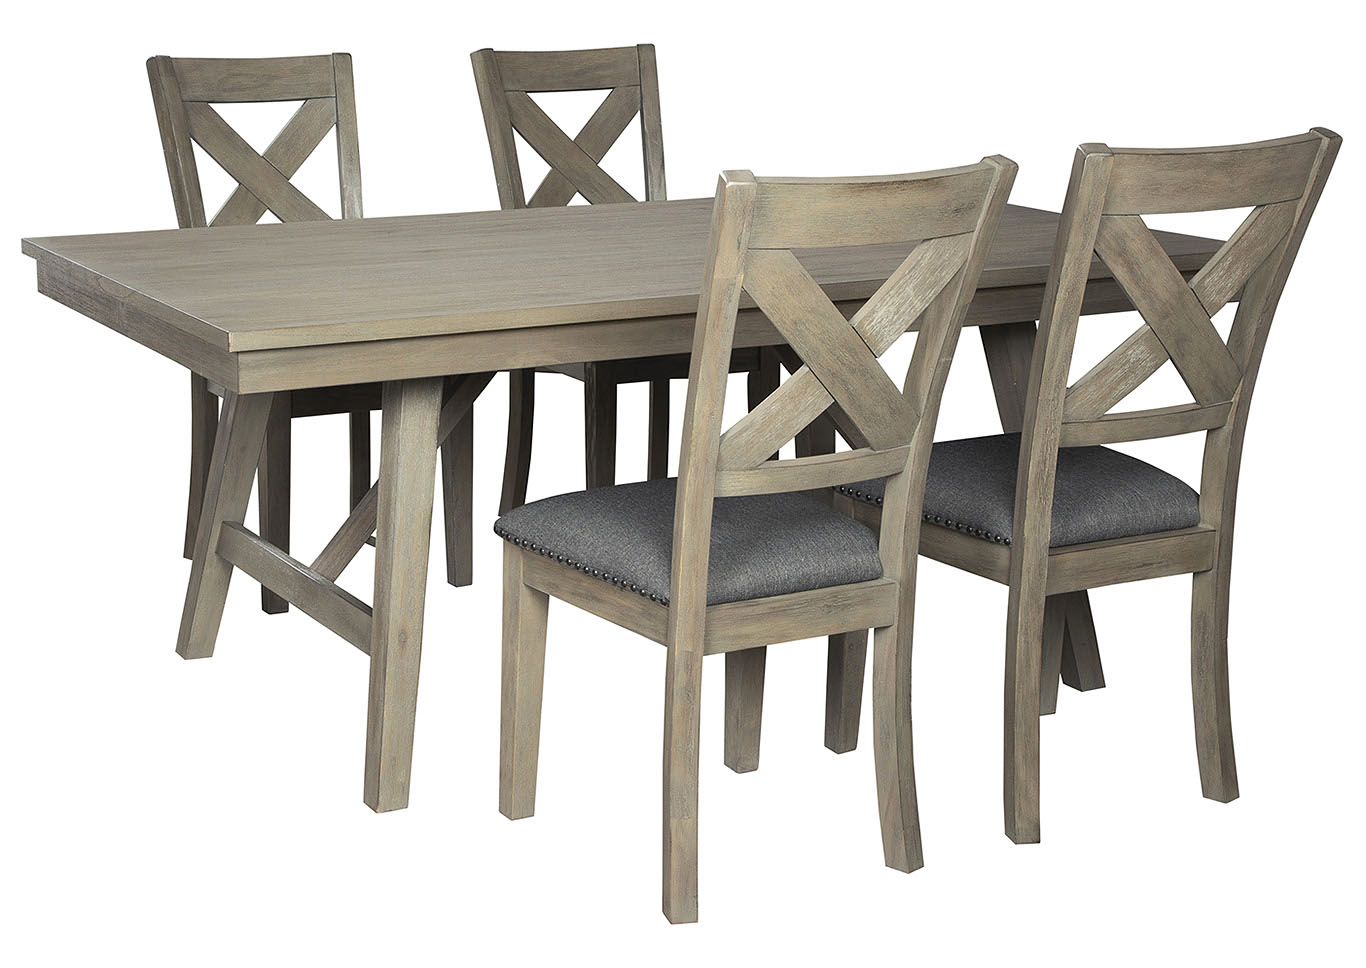 Aldwin Gray Dining Table w/4 Side Chairs,Signature Design By Ashley